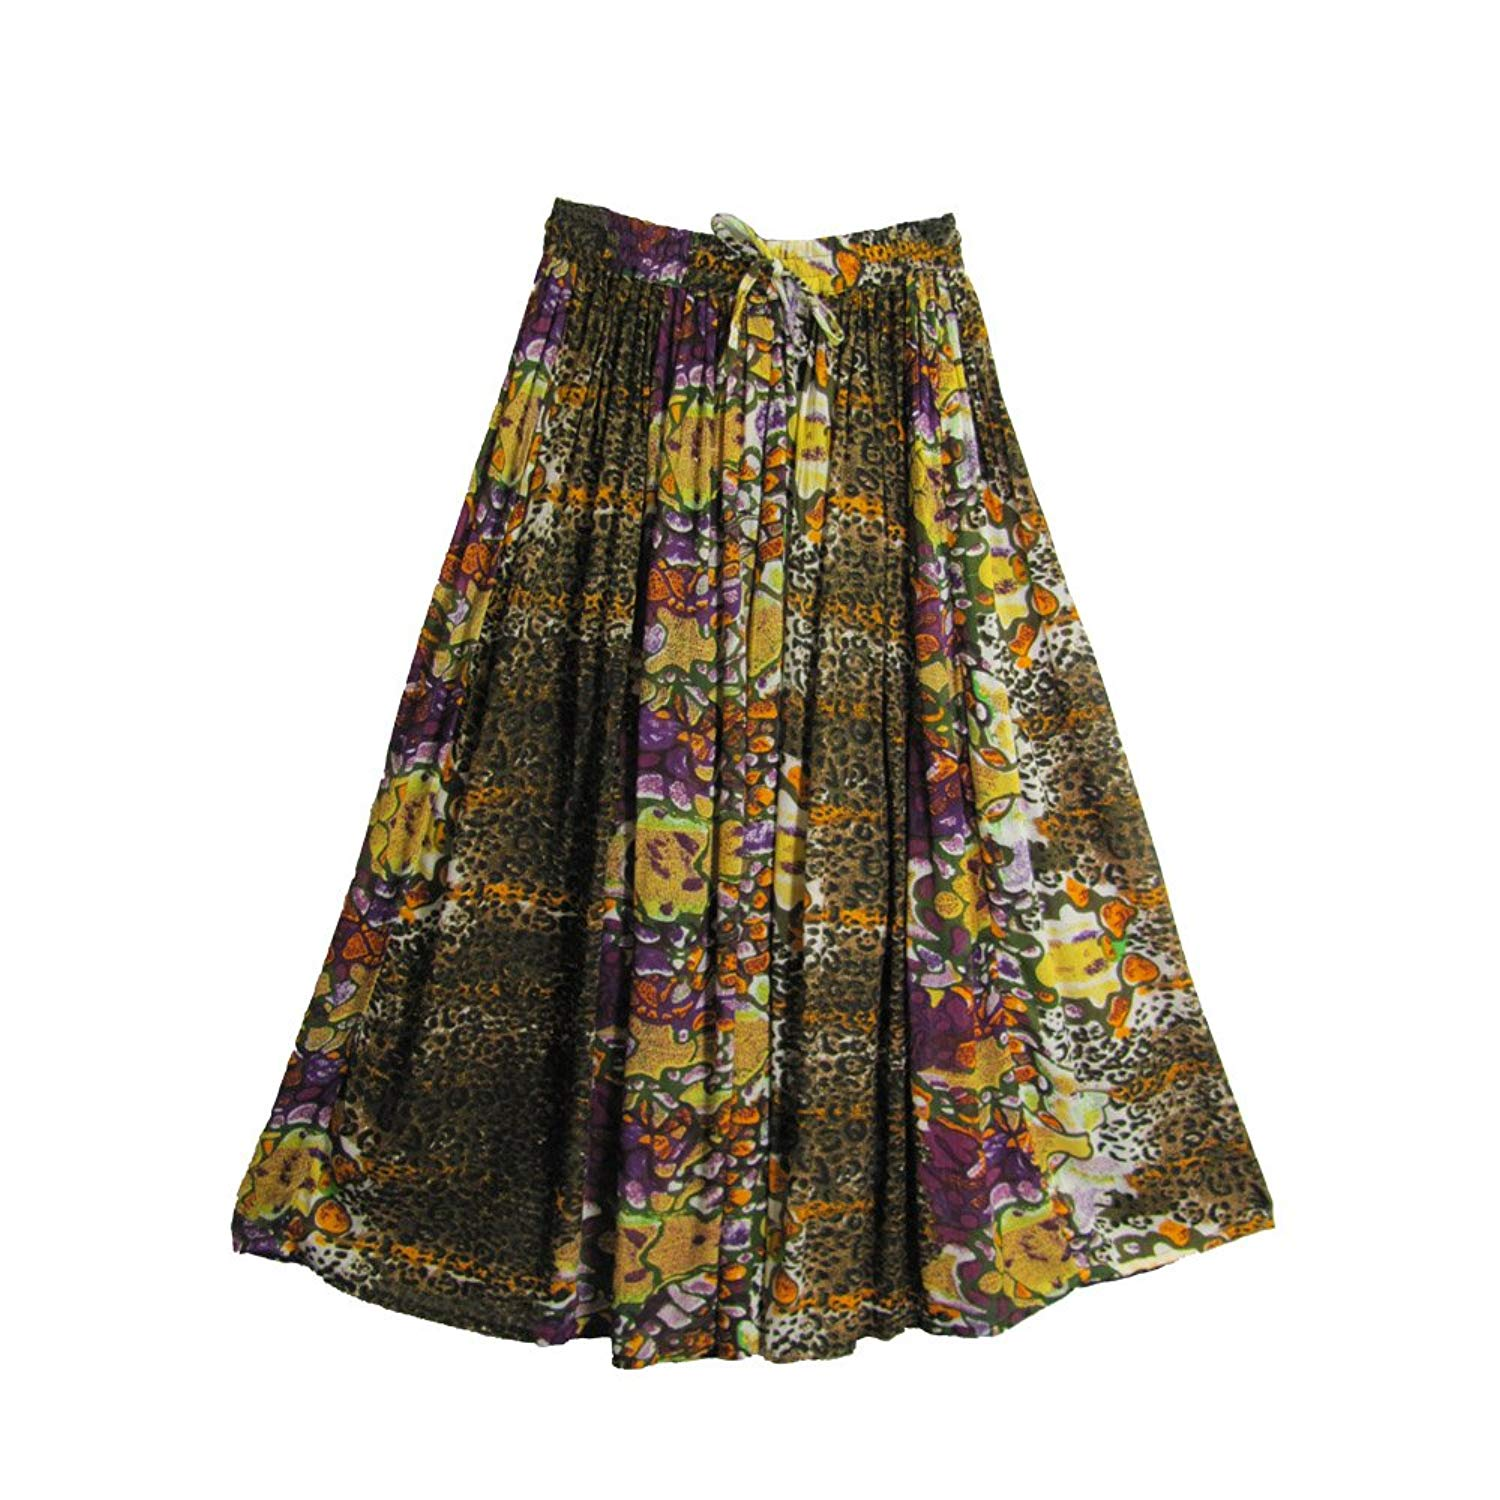 d33bb24da34 ... Missy Plus Bohemian Gauze Cotton Tiered Crinkled Broomstick Long Skirt  Ombre 39.0. Yoga Trendz Indian Purple Leopard Print Bohemian Crinkled  Broomstick ...